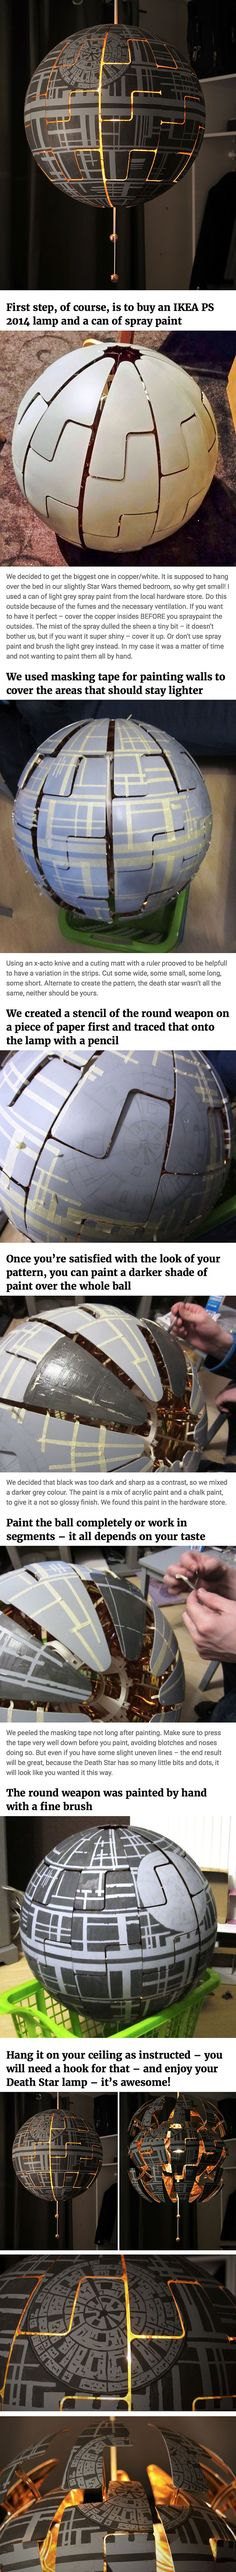 IKEA Lamp Turned Death Star.